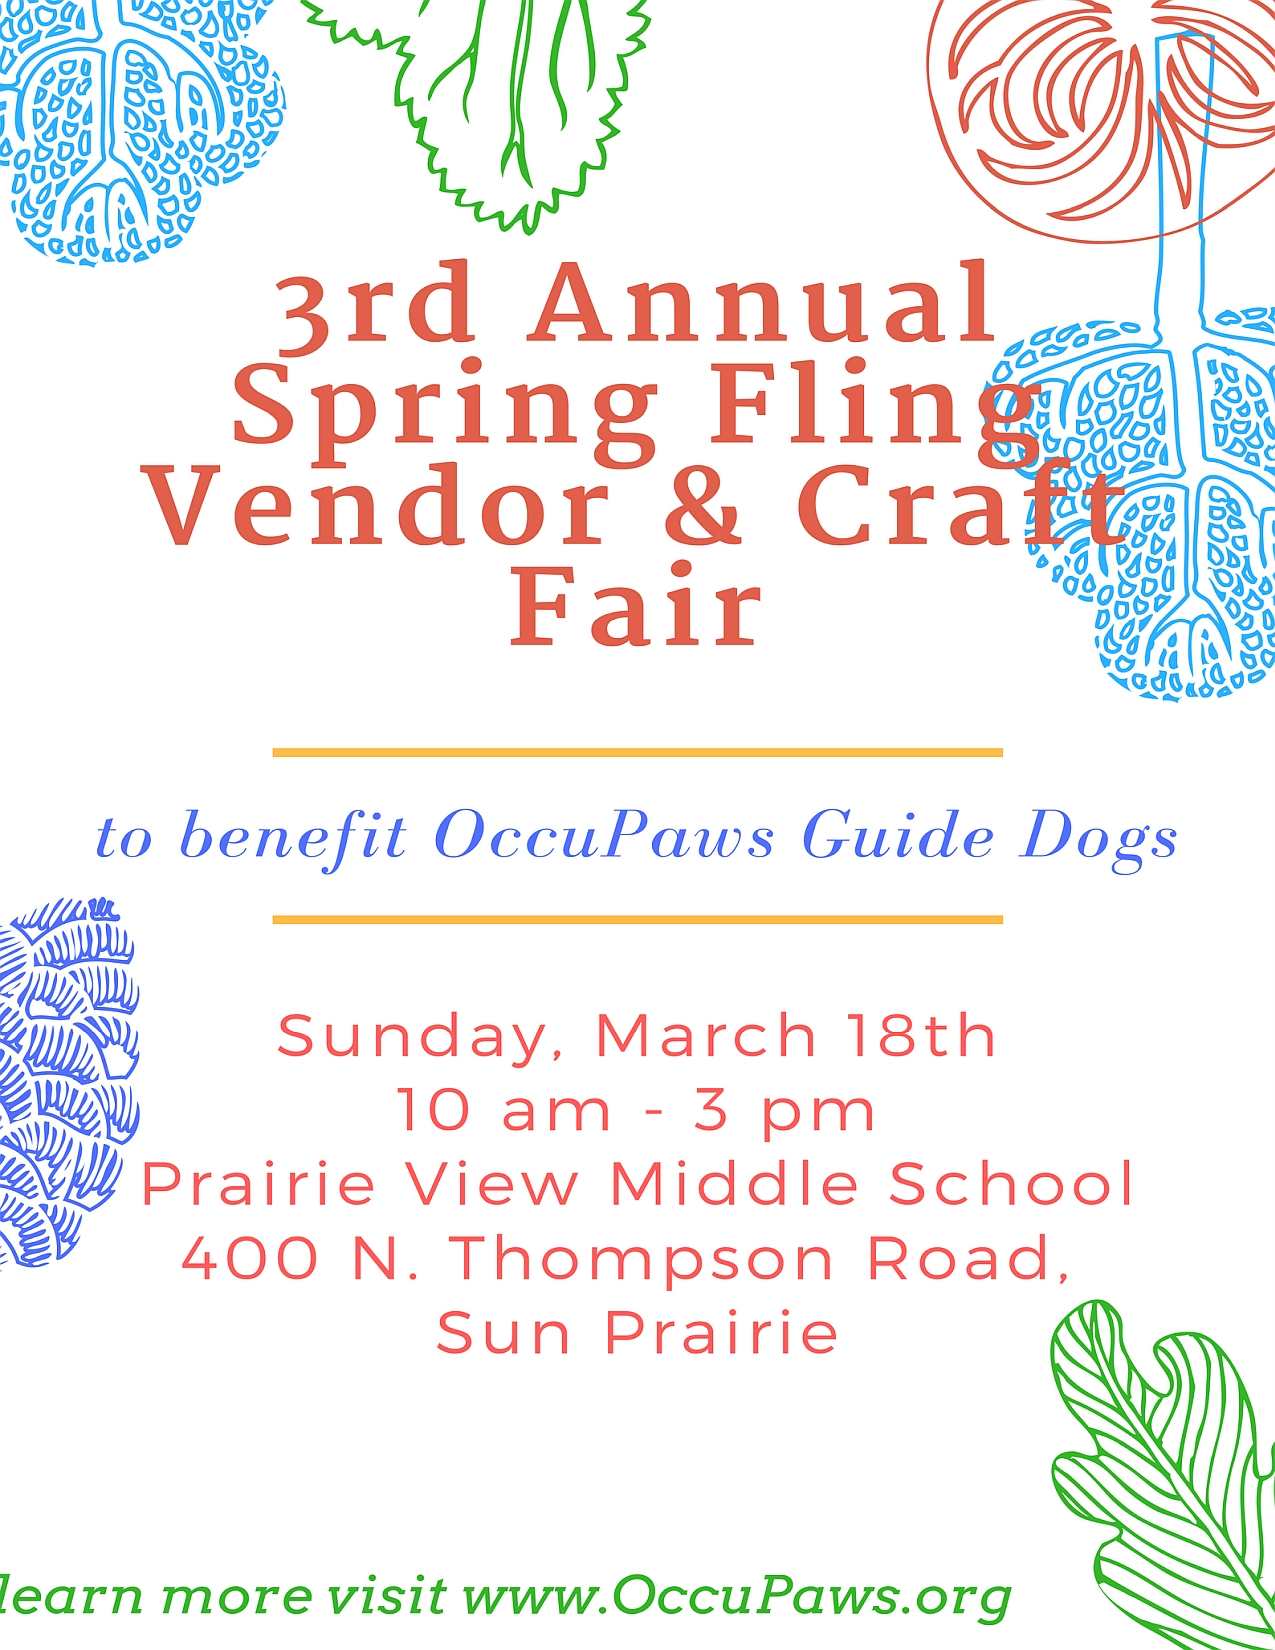 3rd Annual Spring Fling Vendor & Craft Fair @ Prairie View Middle School | Sun Prairie | Wisconsin | United States